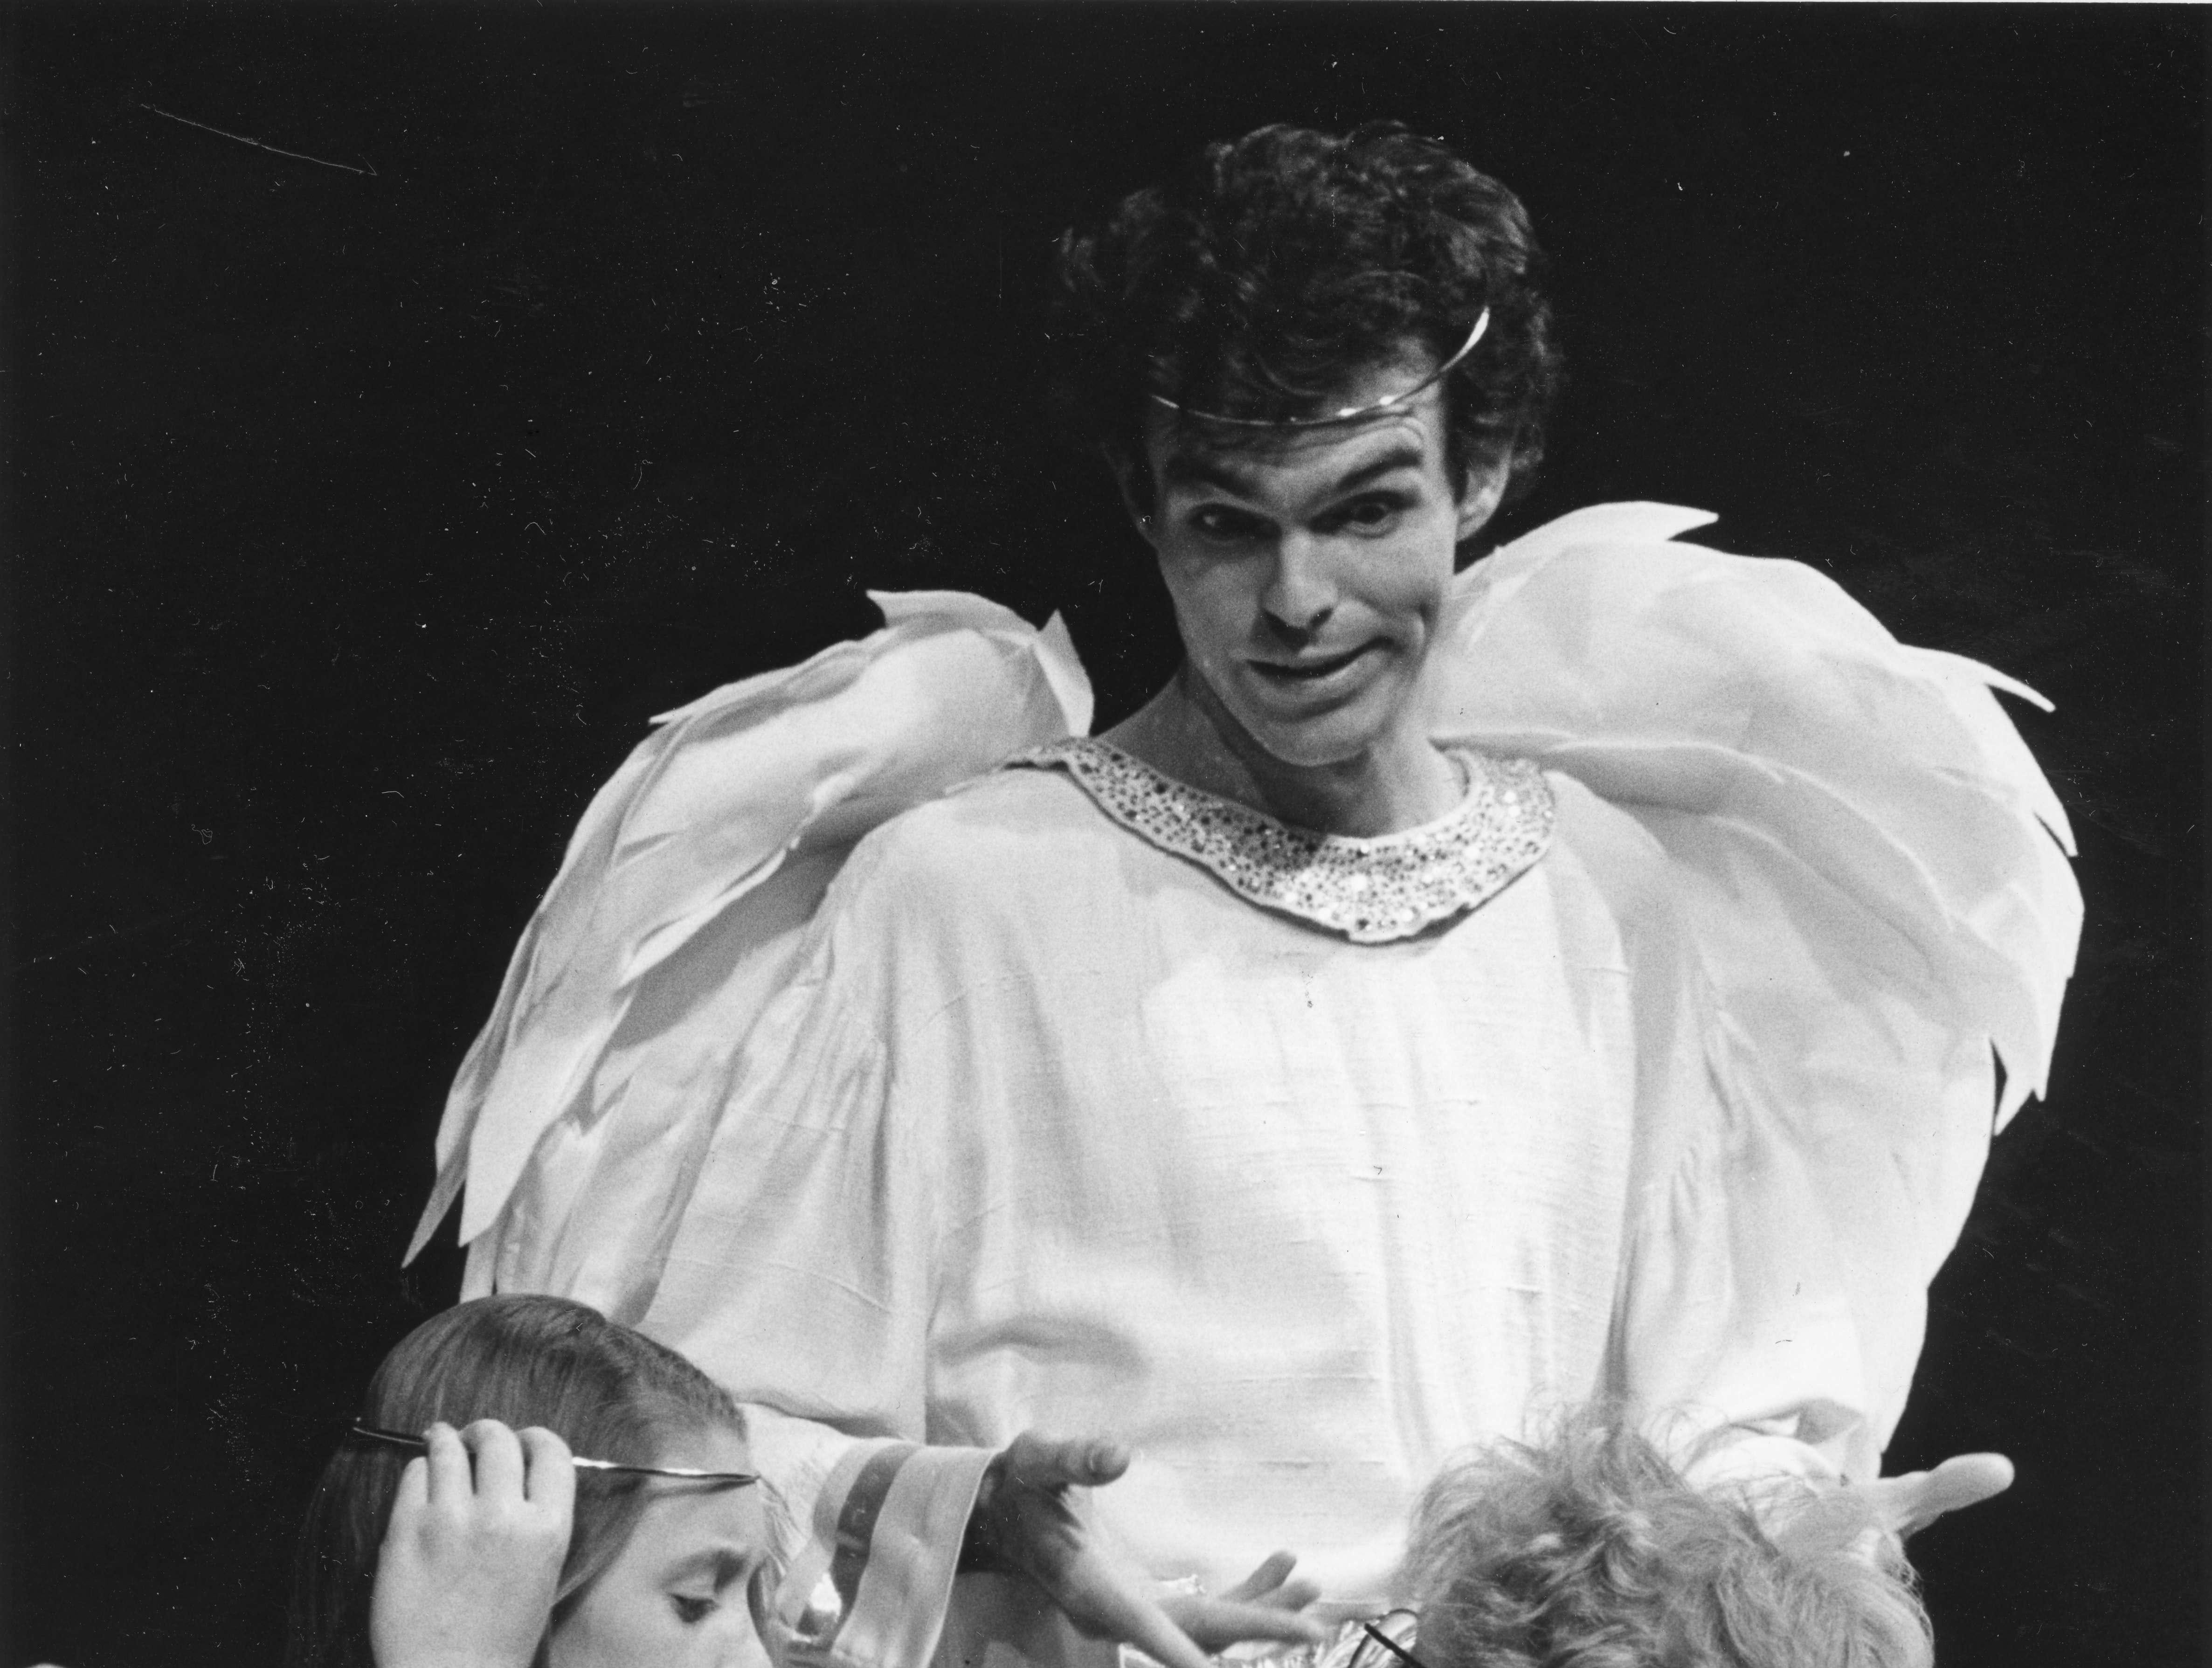 """Stephanie Lechner adjusts a halo on Brittany Nolan as Eric McLeod looks on during a dress rehearsal for """"The Littlest Angel"""" on December 4, 1988 at the Bijou Theatre ."""